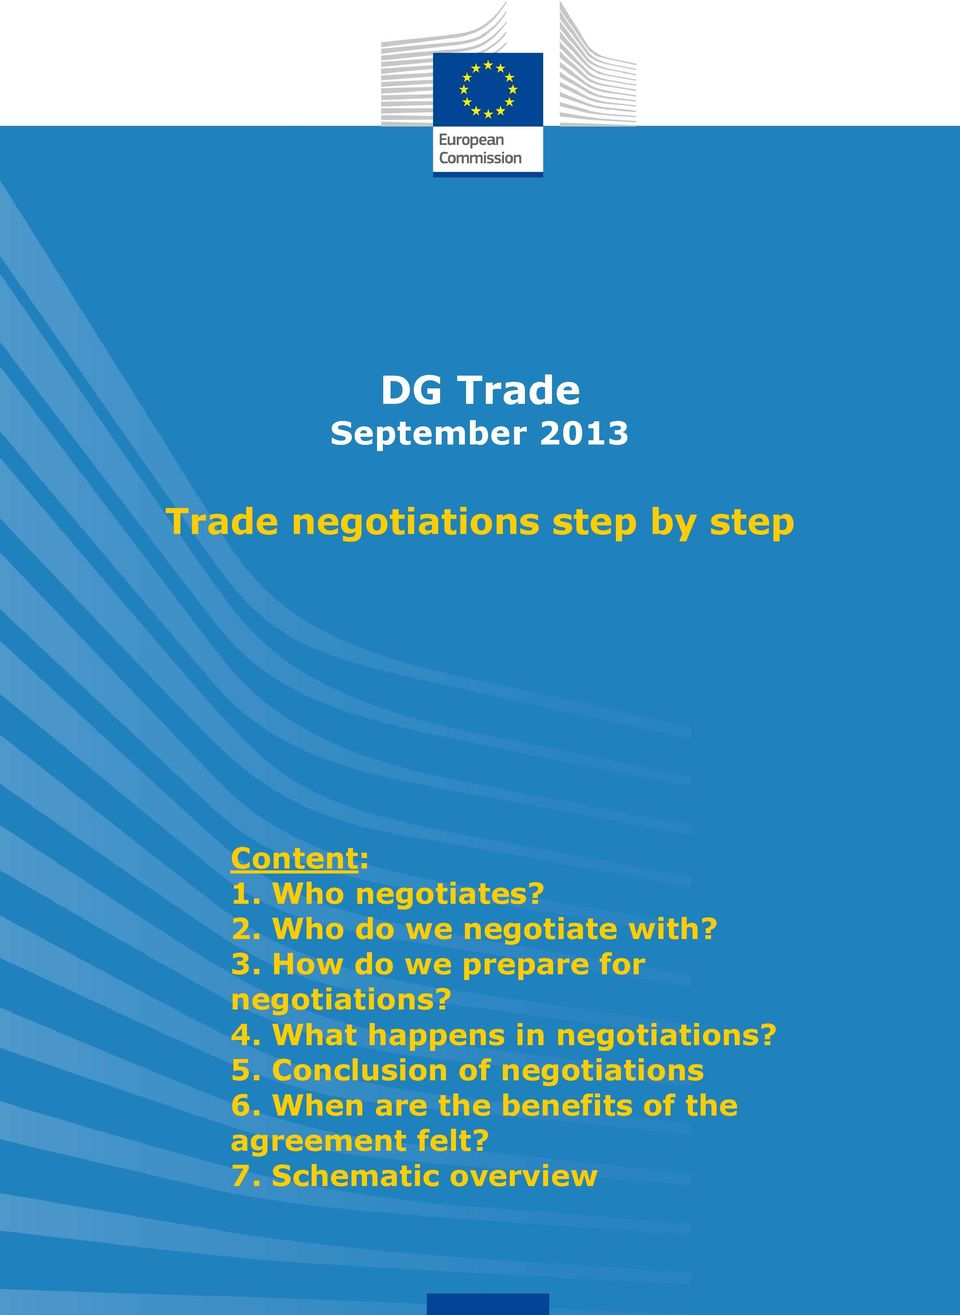 How do we prepare for negotiations? 4. What happens in negotiations? 5.